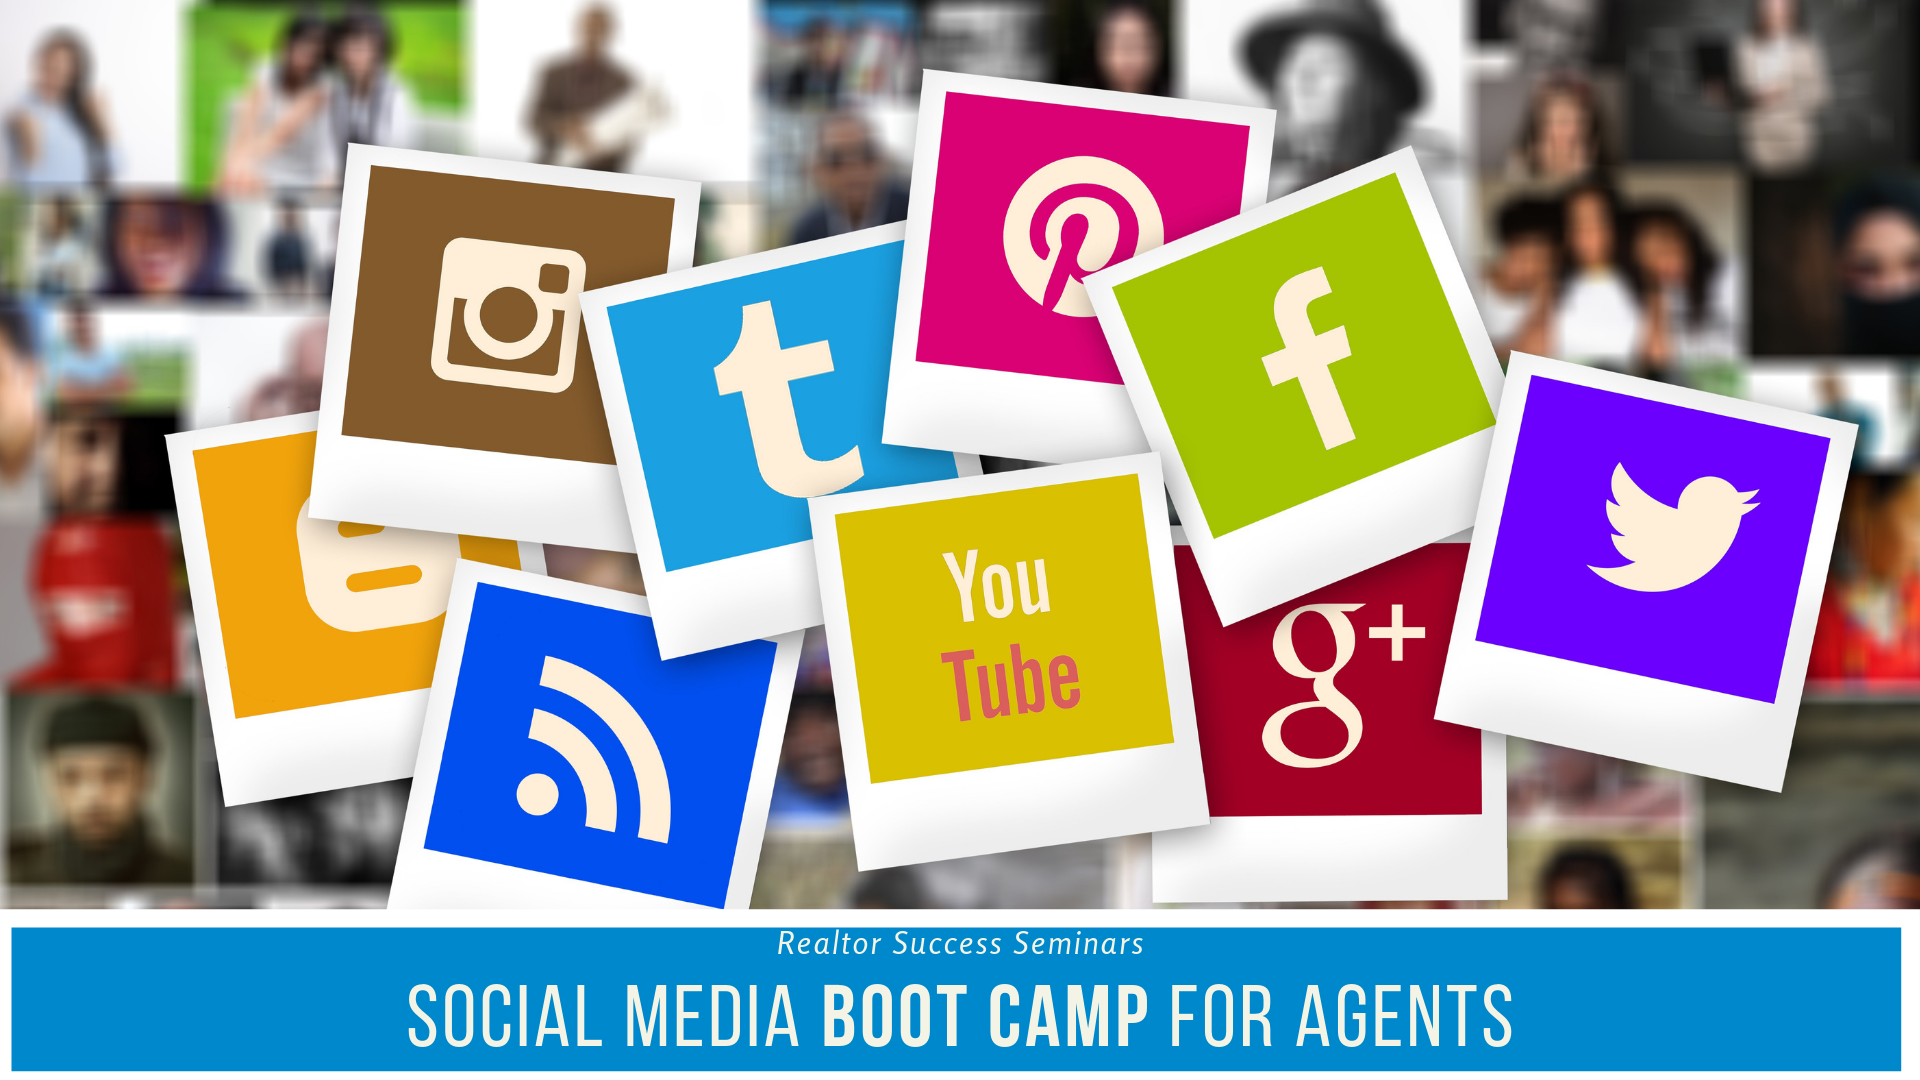 Social Media Boot Camp for Agents